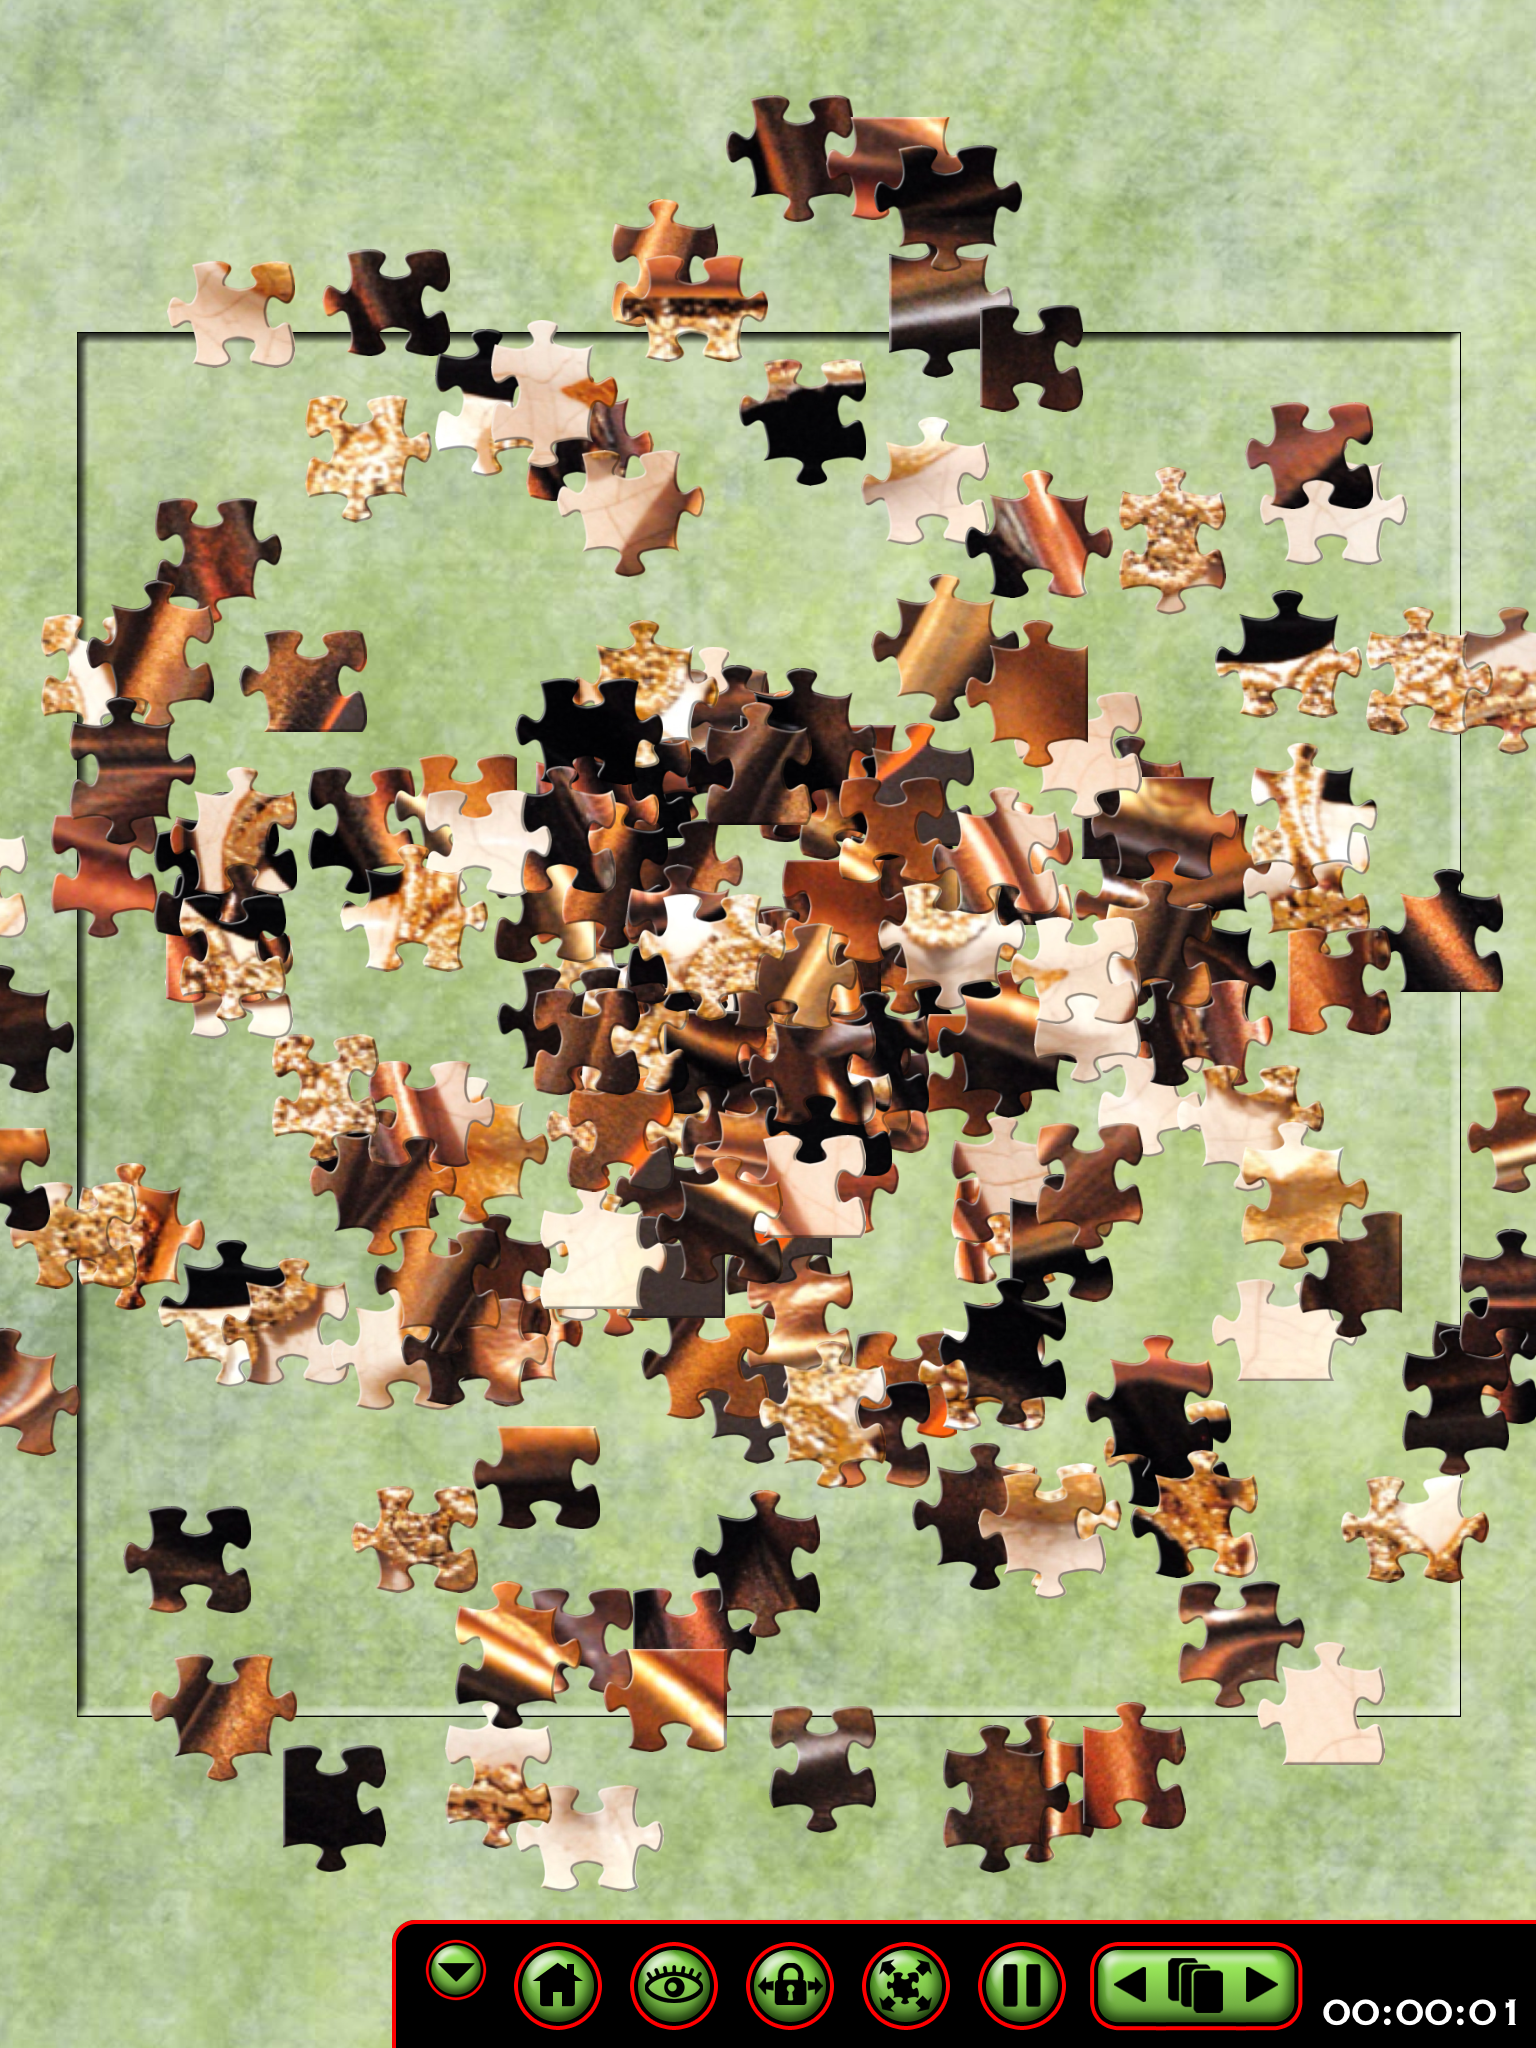 How Are Jigsaw Puzzles Made